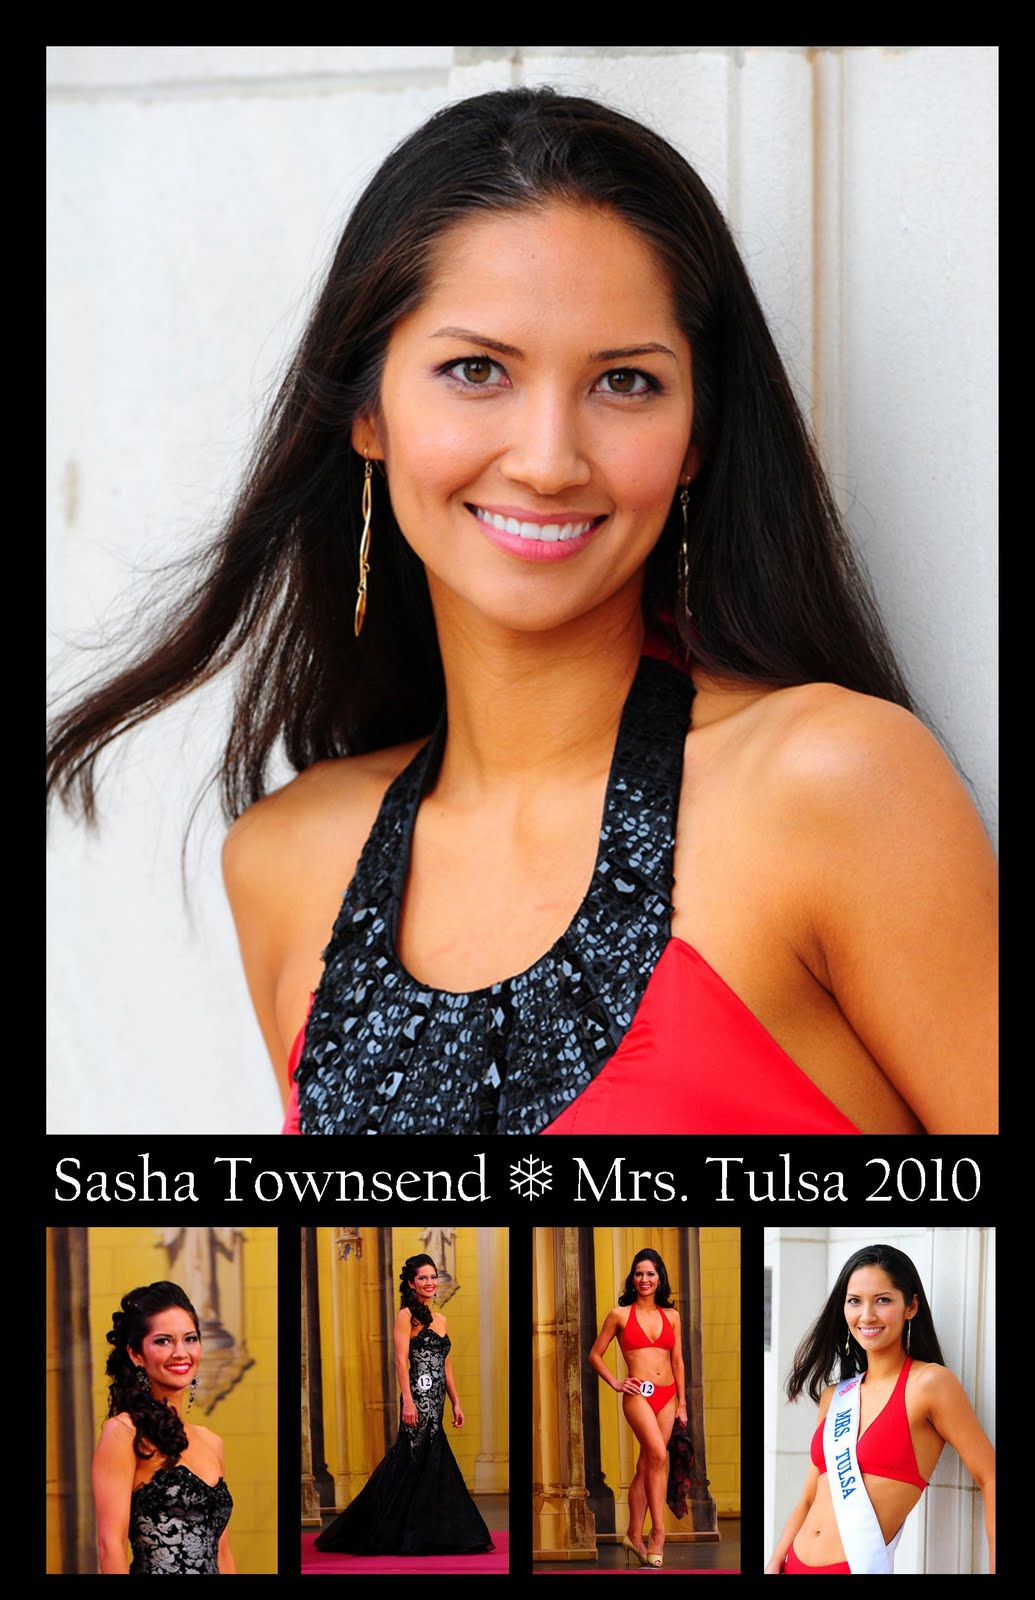 sasha townsend new autograph cards 2011 sponsorship opportunities